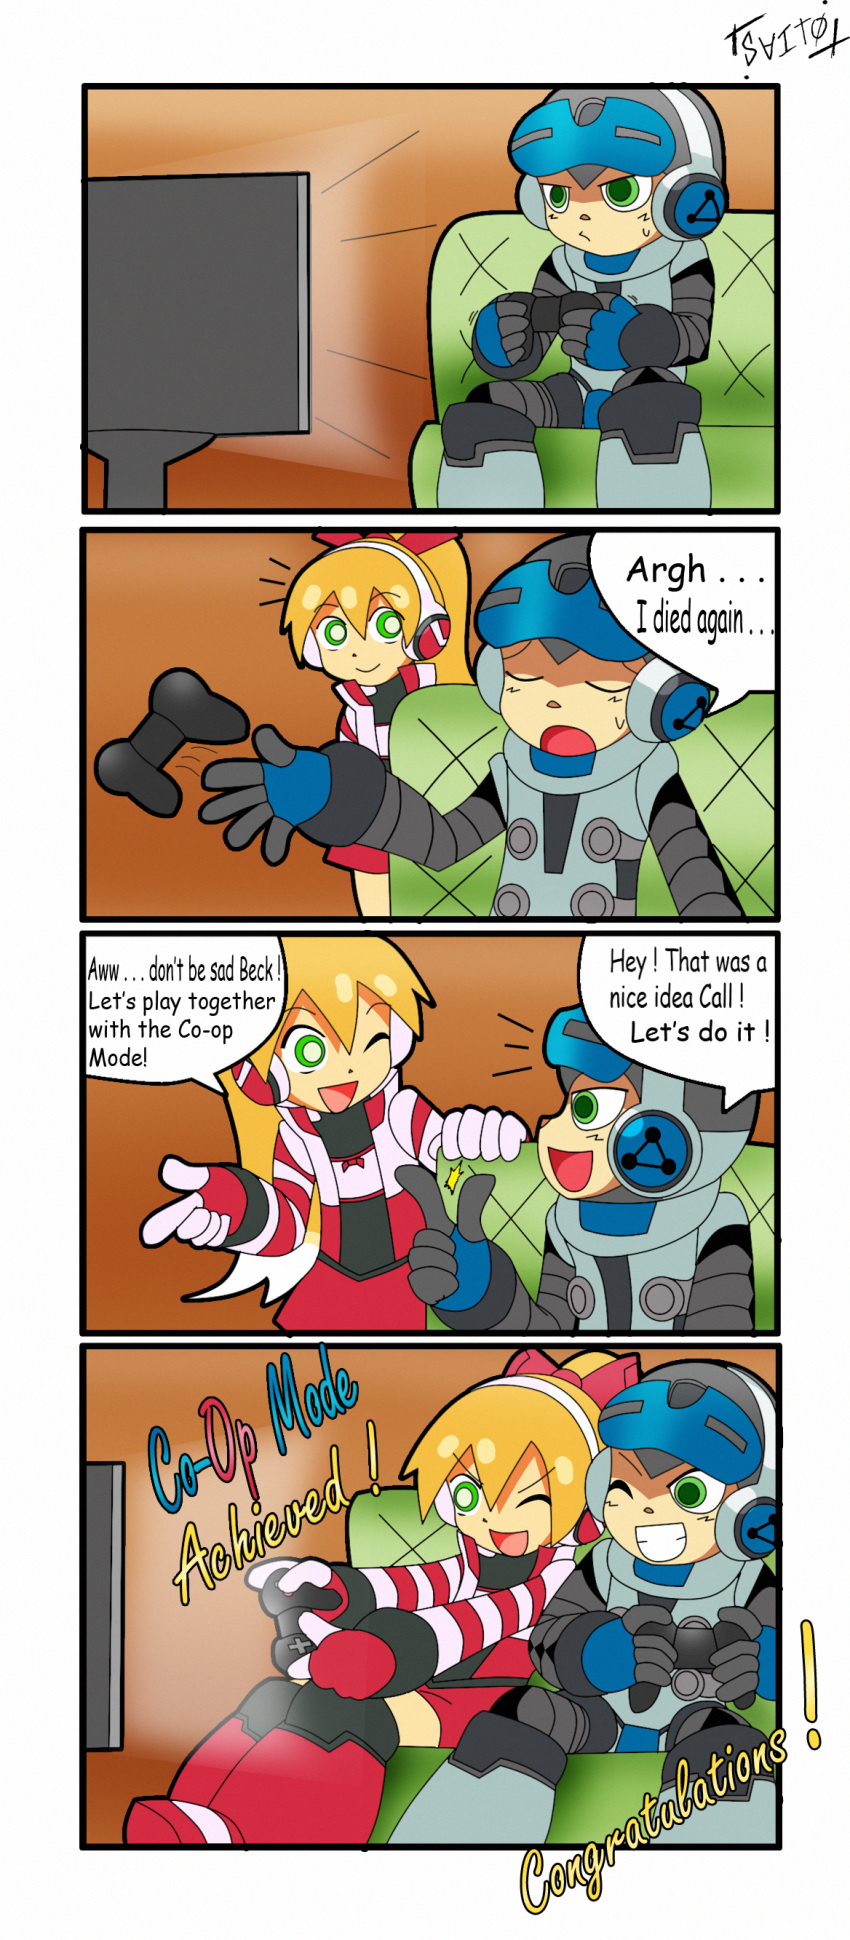 1boy 1girl 4koma ;) absurdres beck_(mighty_no._9) blonde_hair call_(mighty_no._9) comic congratulations controller english game_controller gamepad green_eyes headphones helmet highres long_hair mighty_no._9 playing_games ponytail shoutaro_saito striped_sleeves wink